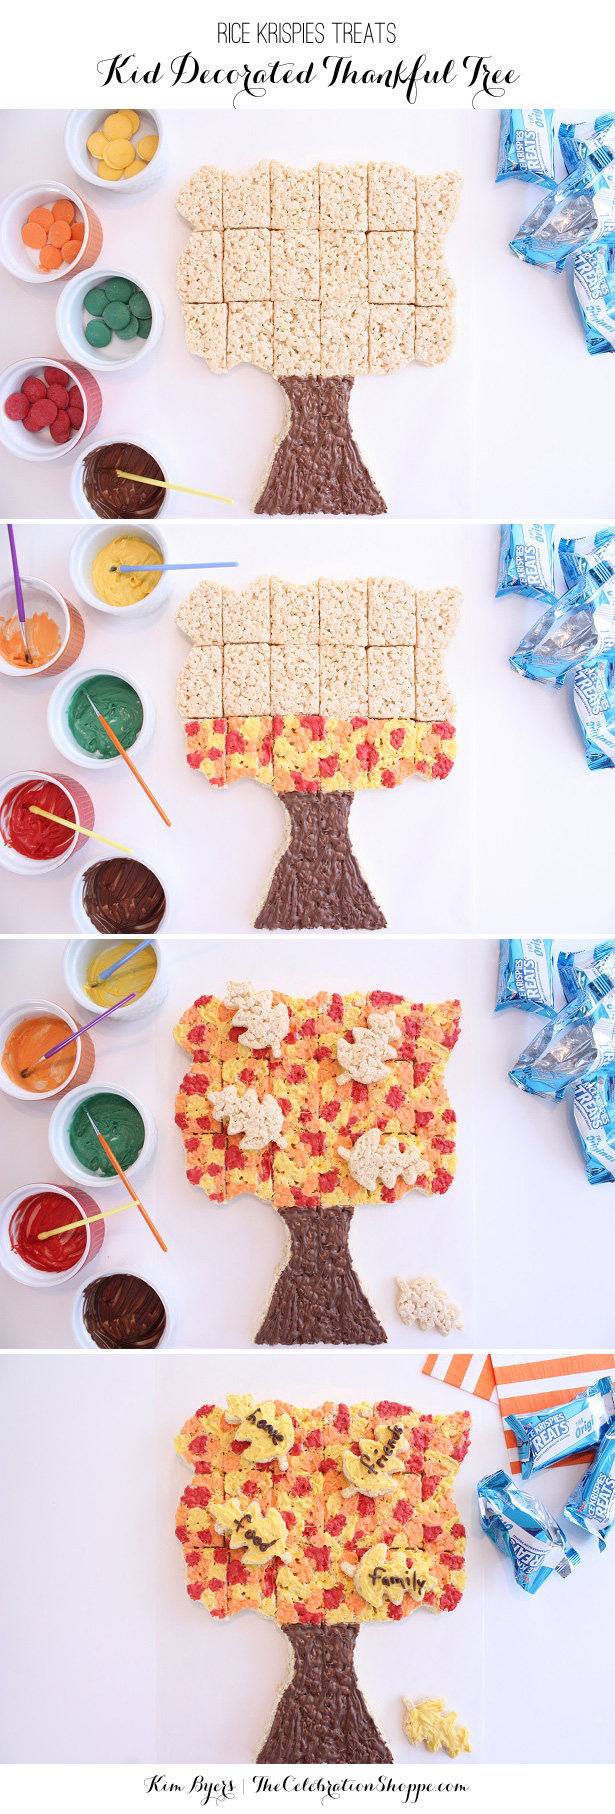 """Rice Krispies Treats Thankful Tree Pull-A-Part   Kids can """"paint"""" while you cook!   Kim Byers, TheCelebrationShoppe.com"""